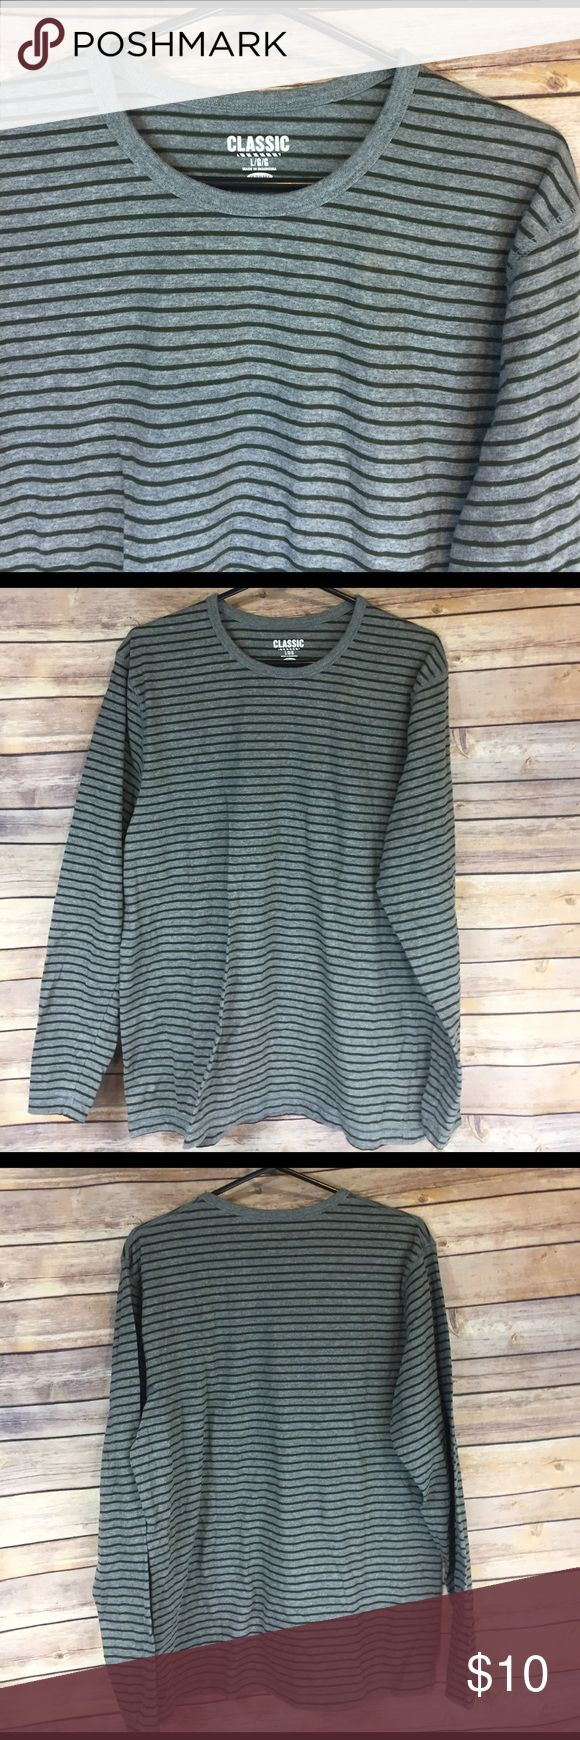 🚹large old navy classic long sleeve tee Green and gray.  Like new.  🛍 buy 2+ items and get 25% off your purchase automatically!! 🛍 Old Navy Shirts Tees - Long Sleeve